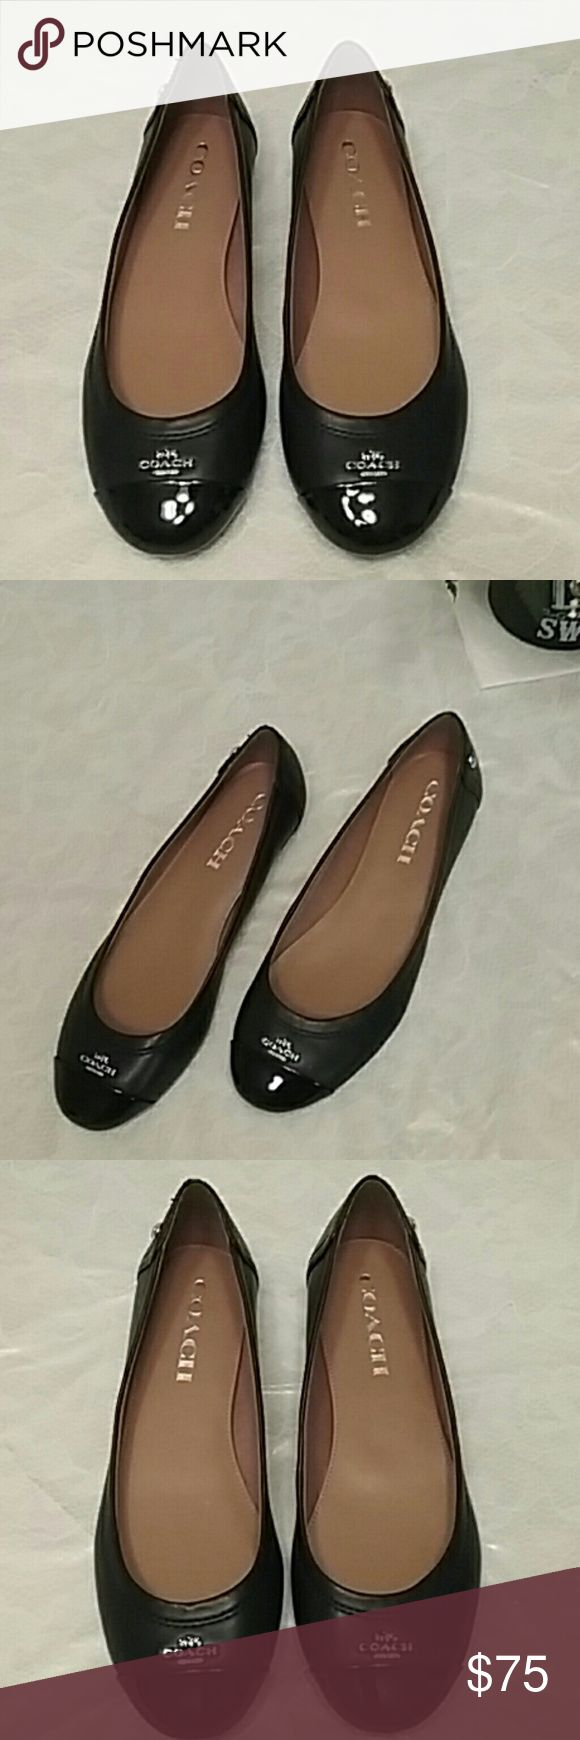 NEW Coach flats Brand new super cute black Coach flats insole is tan and says coach. On the top of toes it says coach and has the coach logo. NEW NEW NEW Coach Shoes Flats & Loafers